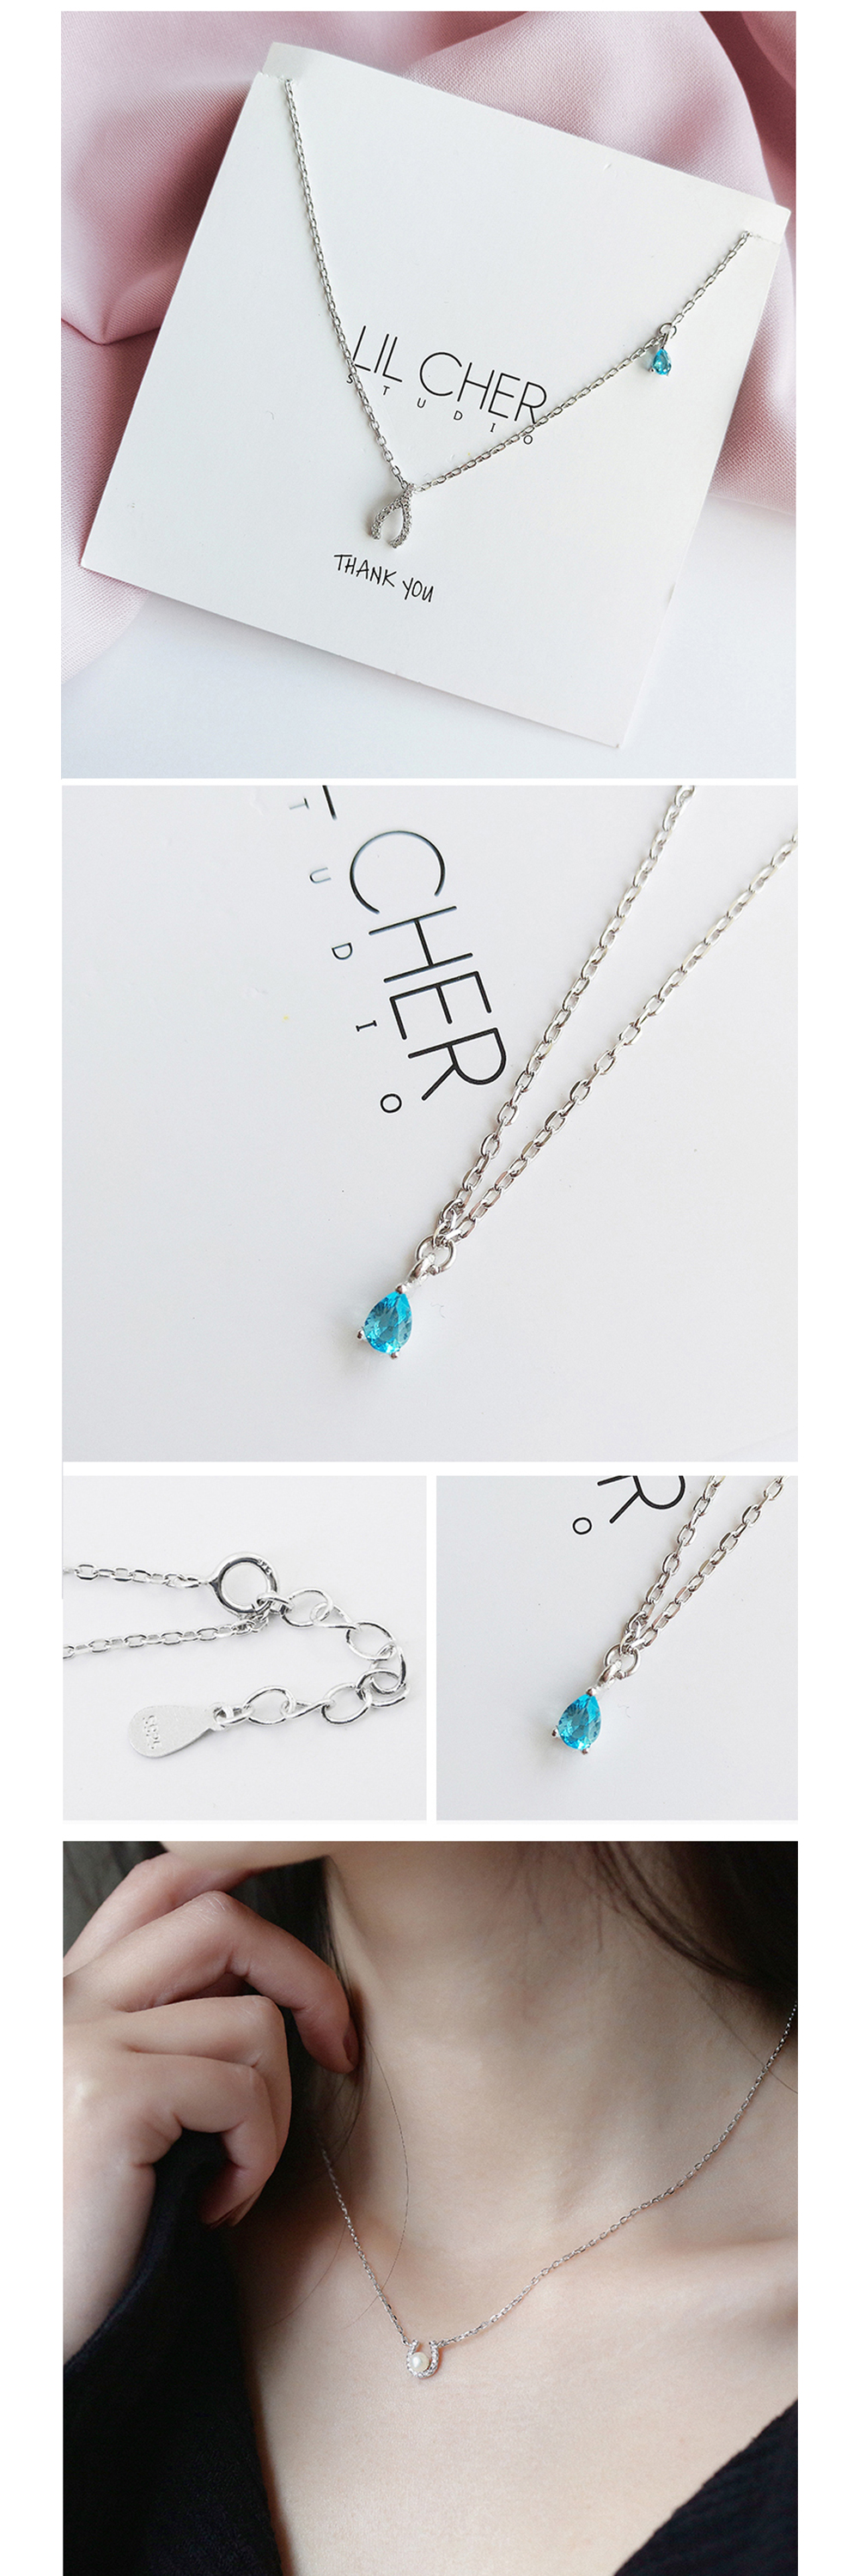 Sterling Silver Necklace Singular Style